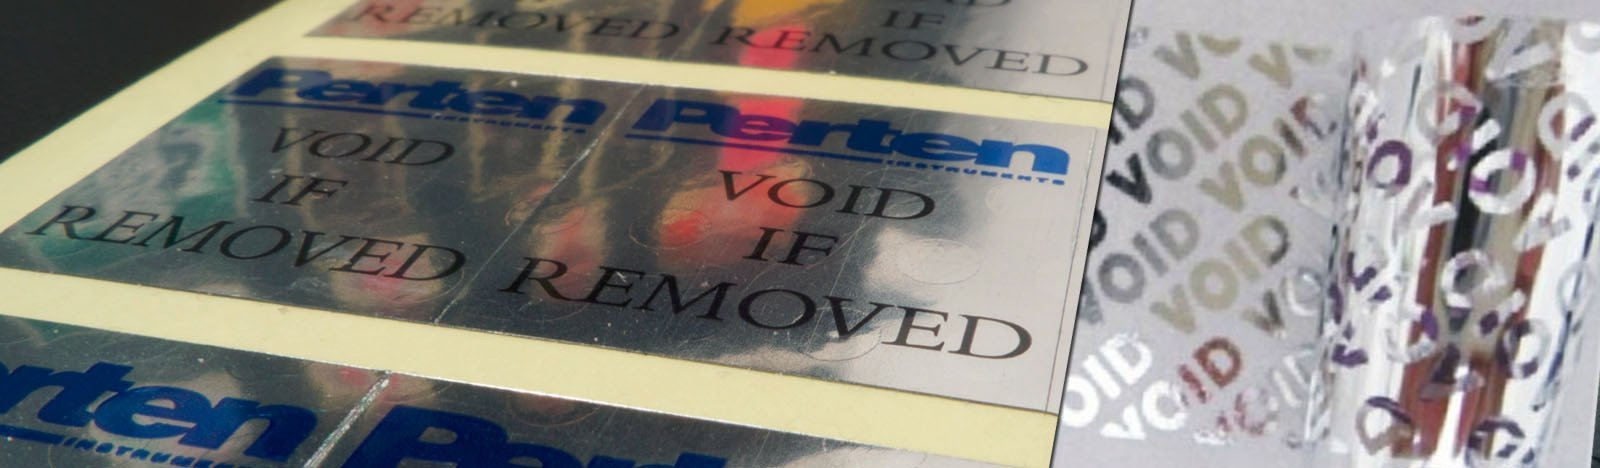 Silver Void Labels